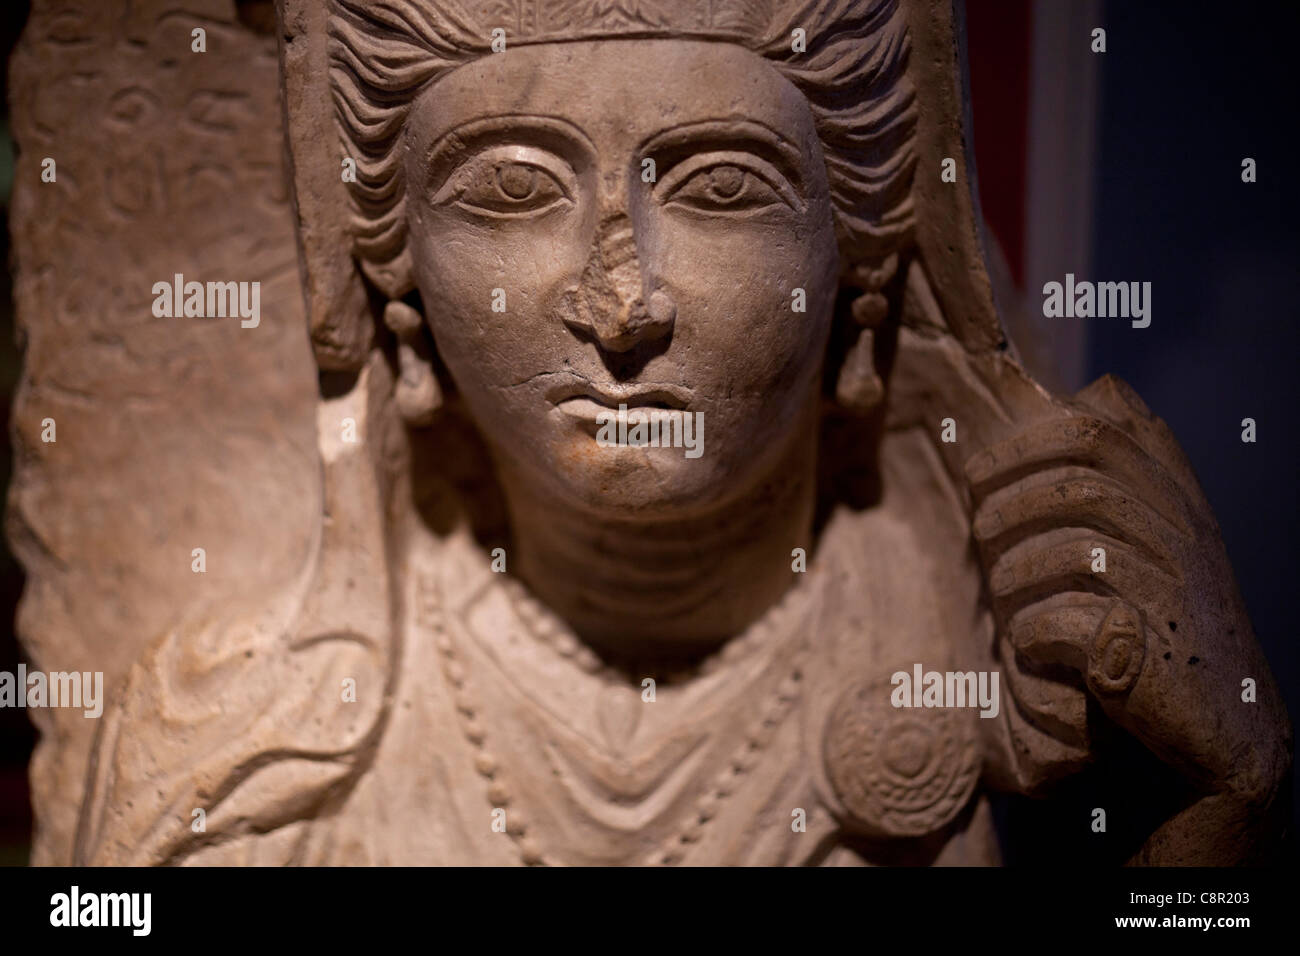 Second Century AD Female Funerary bust from Palmyra Syria on display at Manchester Museum - Stock Image